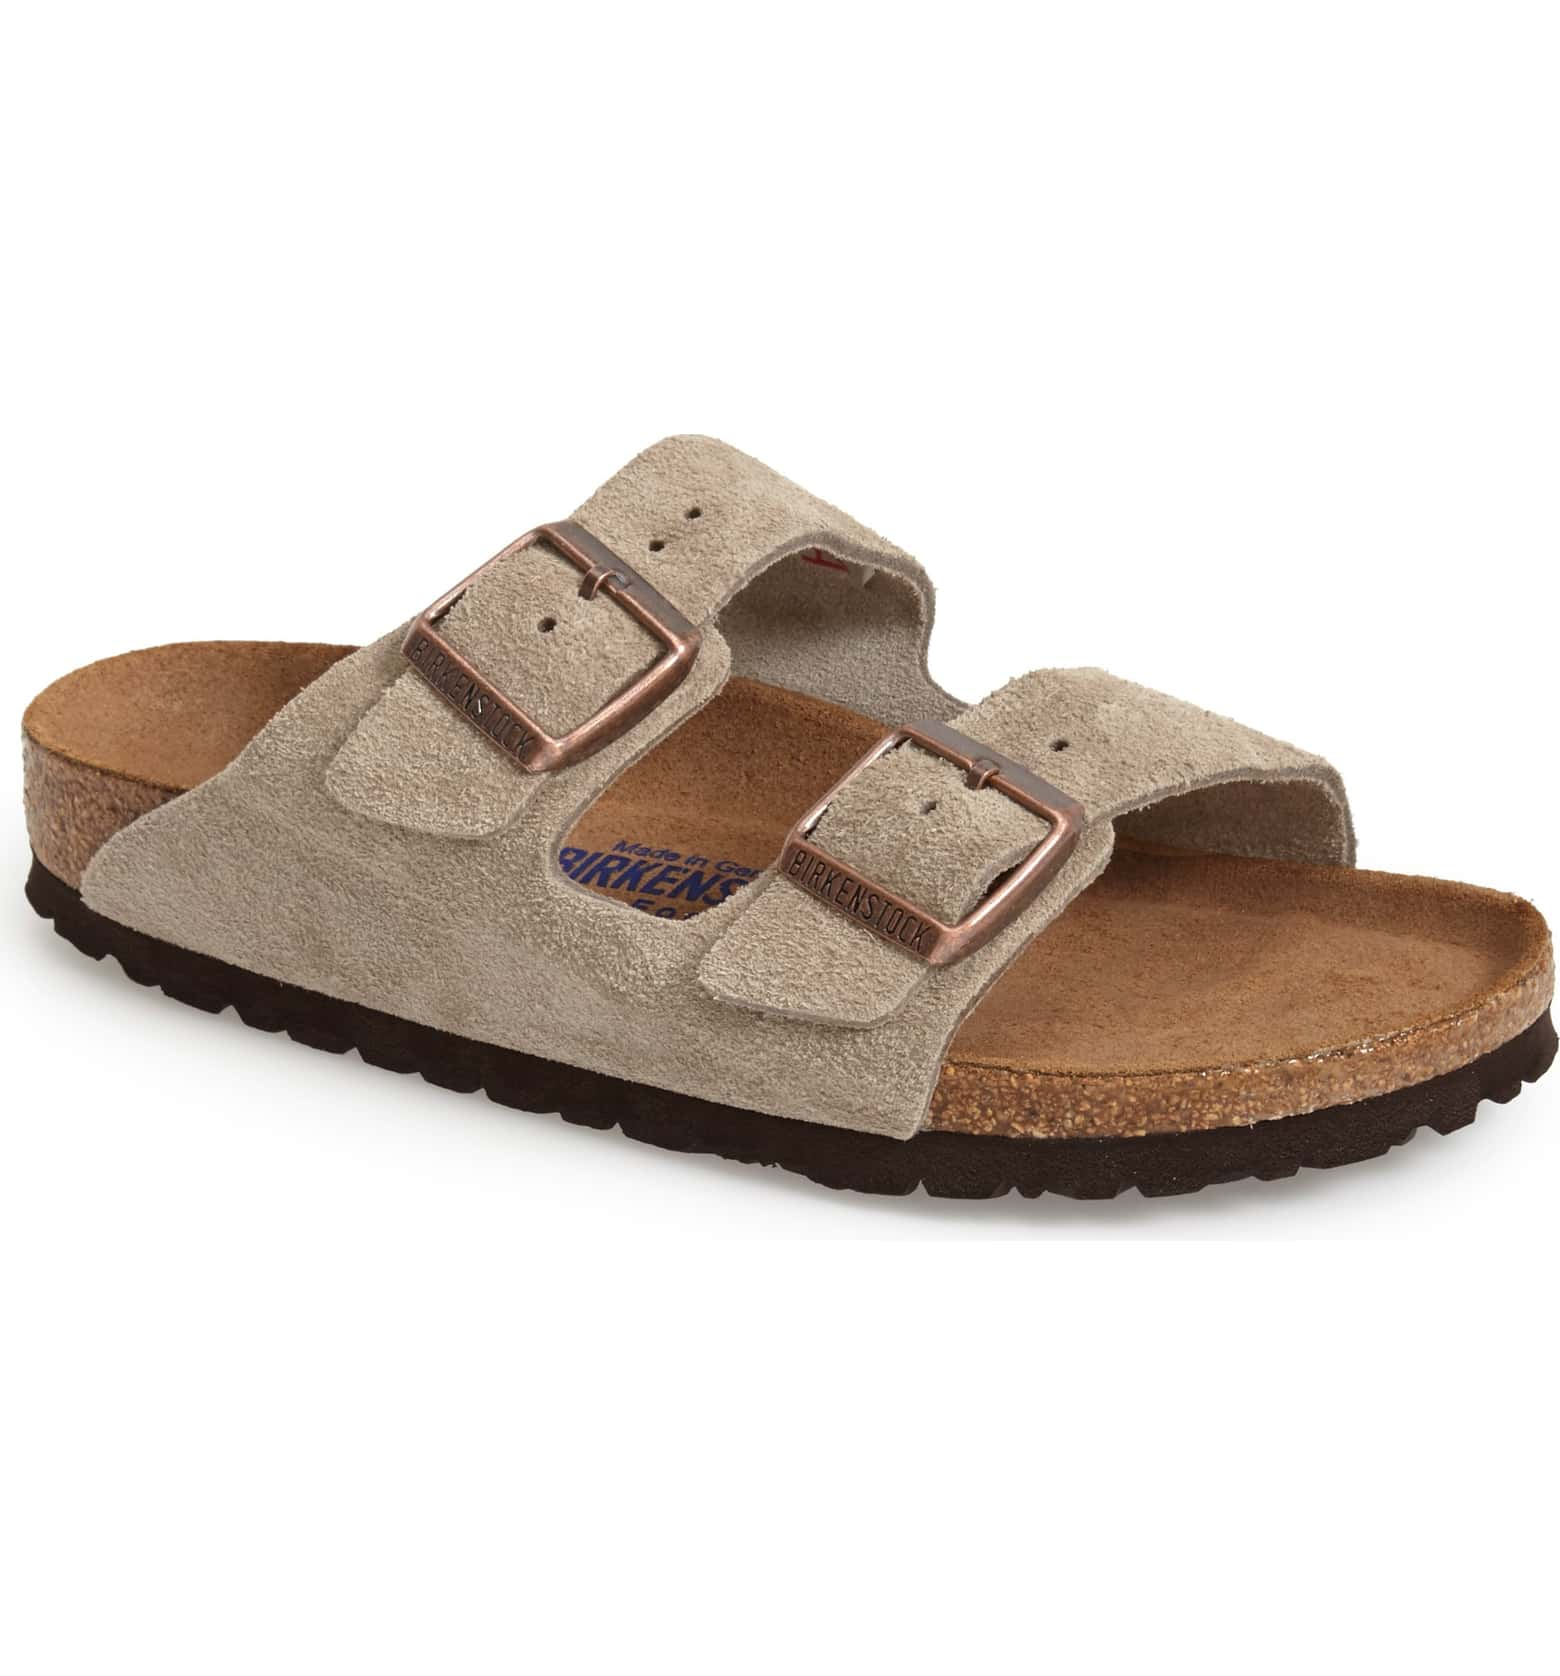 Comfortable Sandals - I love Birkenstocks but if you're not into them, that's ok. Find yourself a pair of sandals that have support and are comfortable. I cannot stress the support part enough!